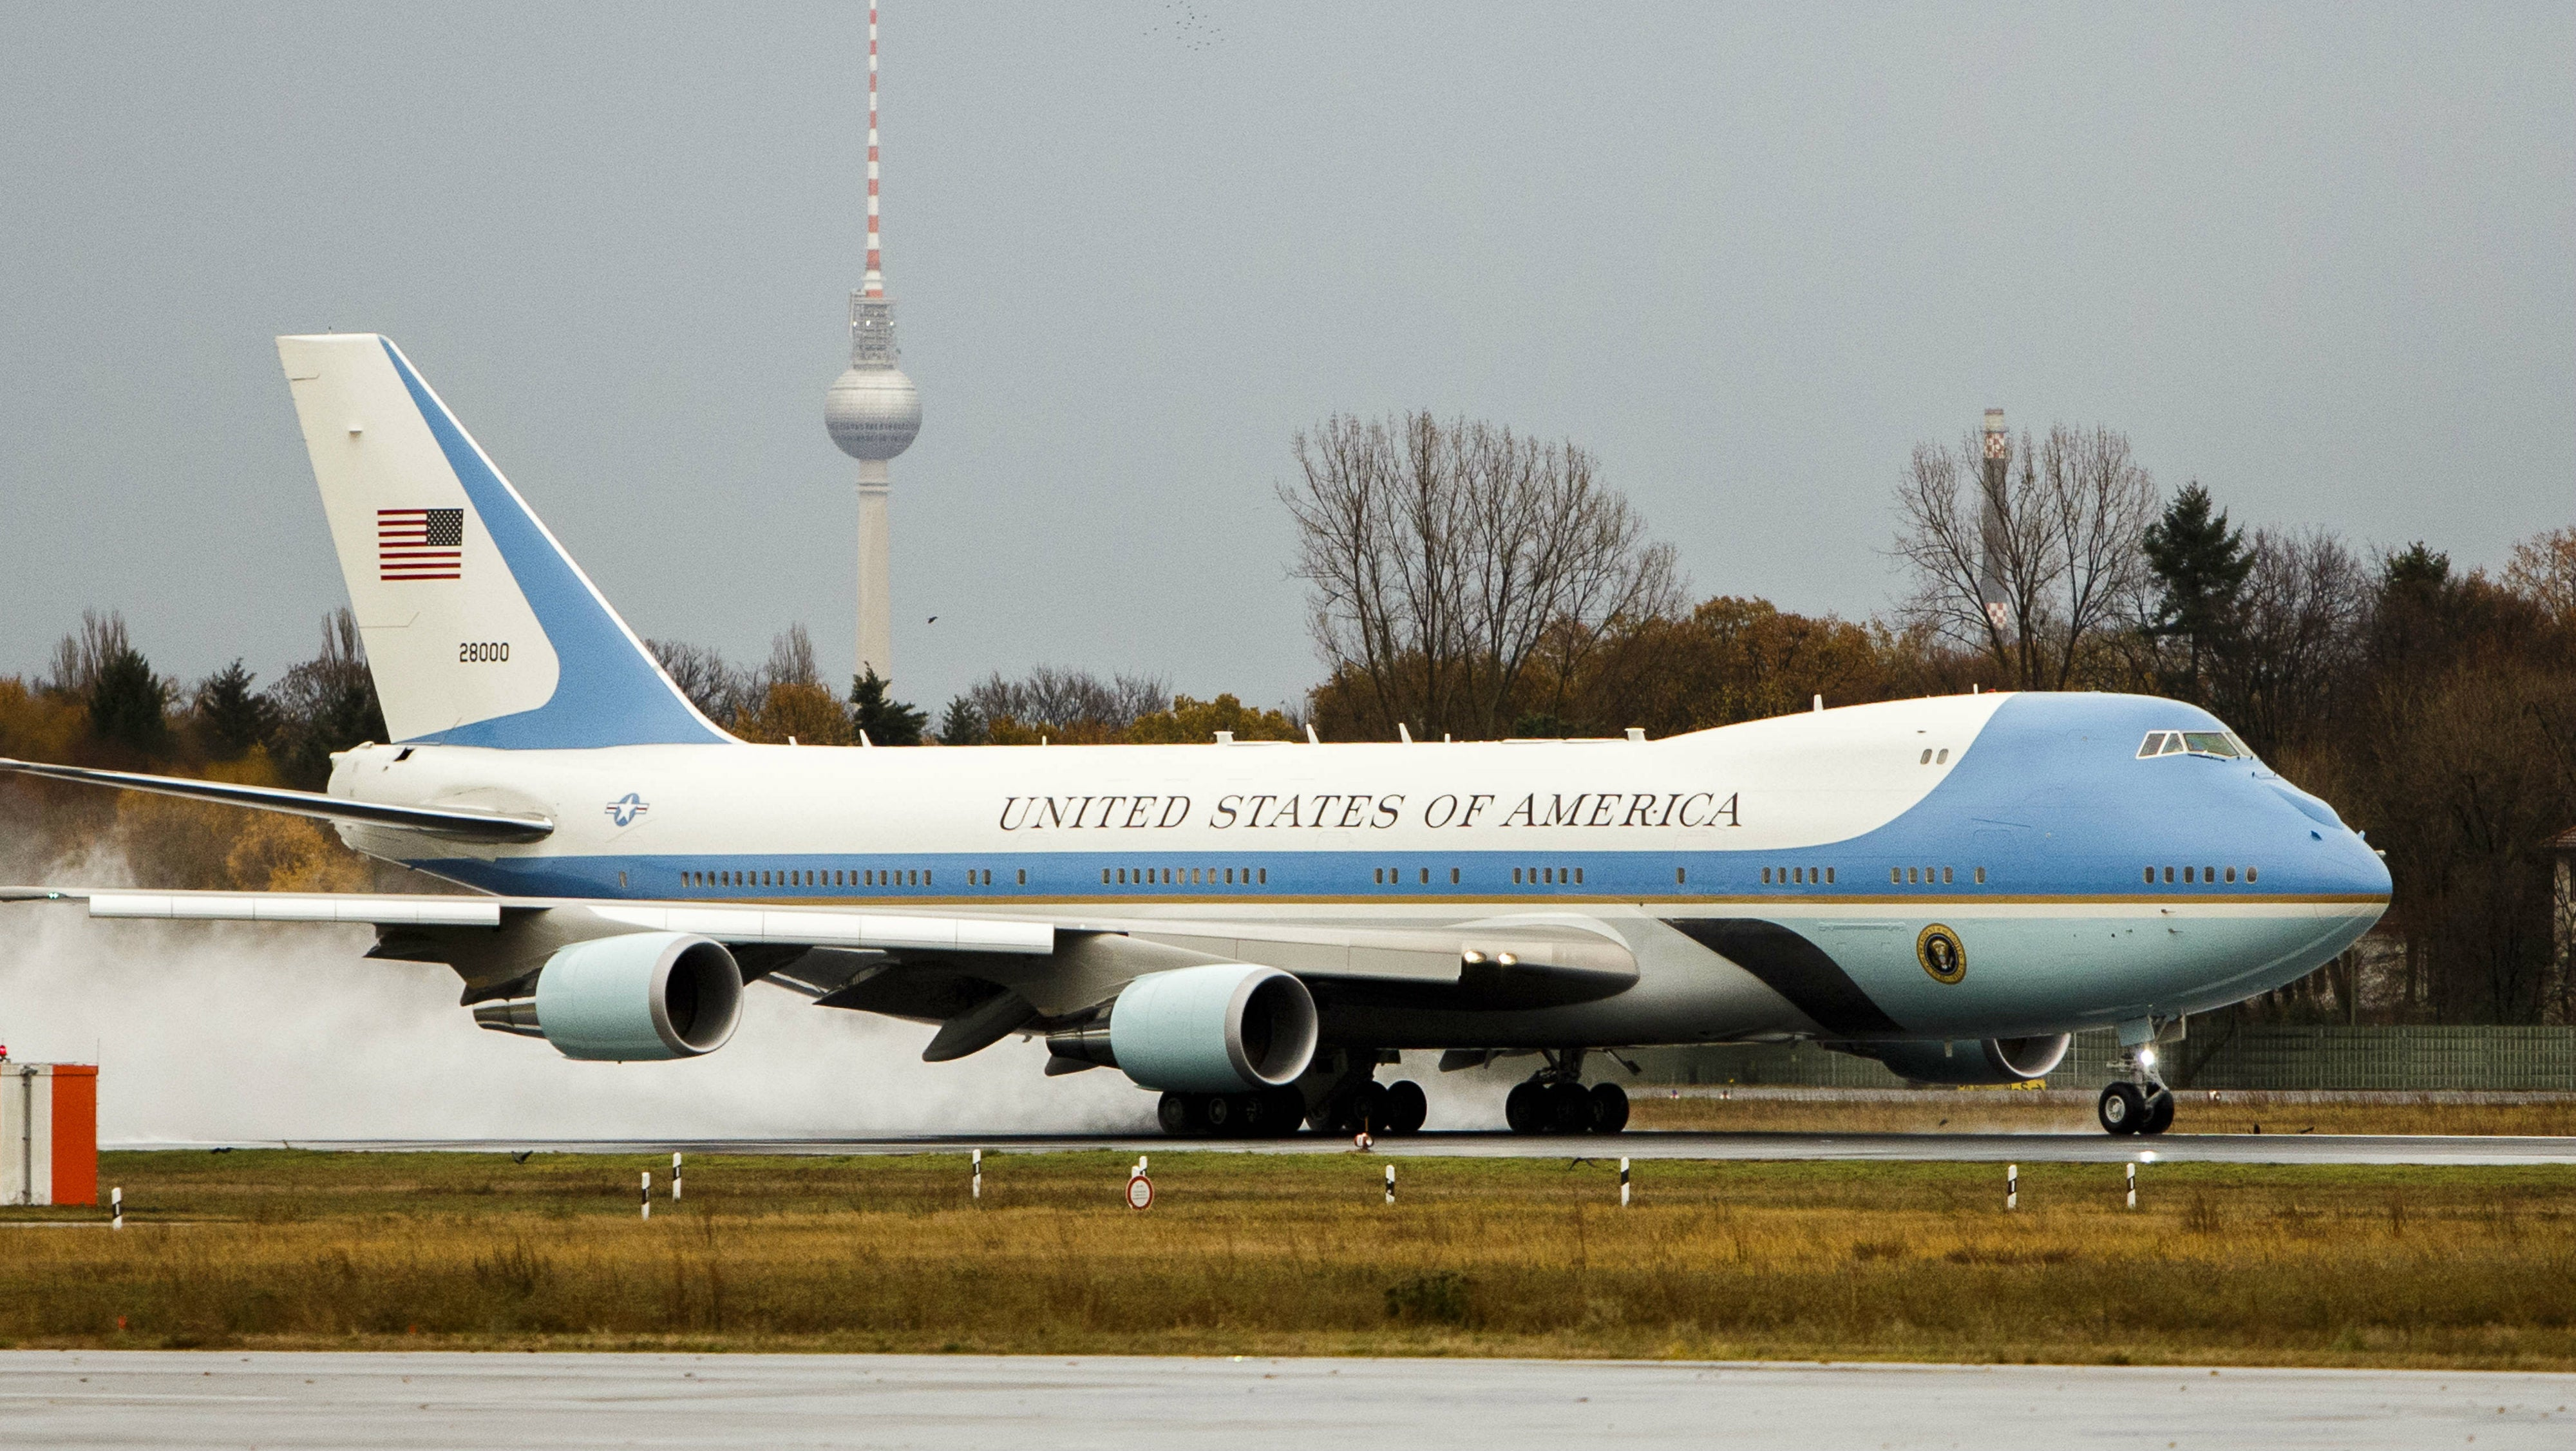 Trump Complains About Air Force One Upgrade He Won't Get To Enjoy, Lies About Costs